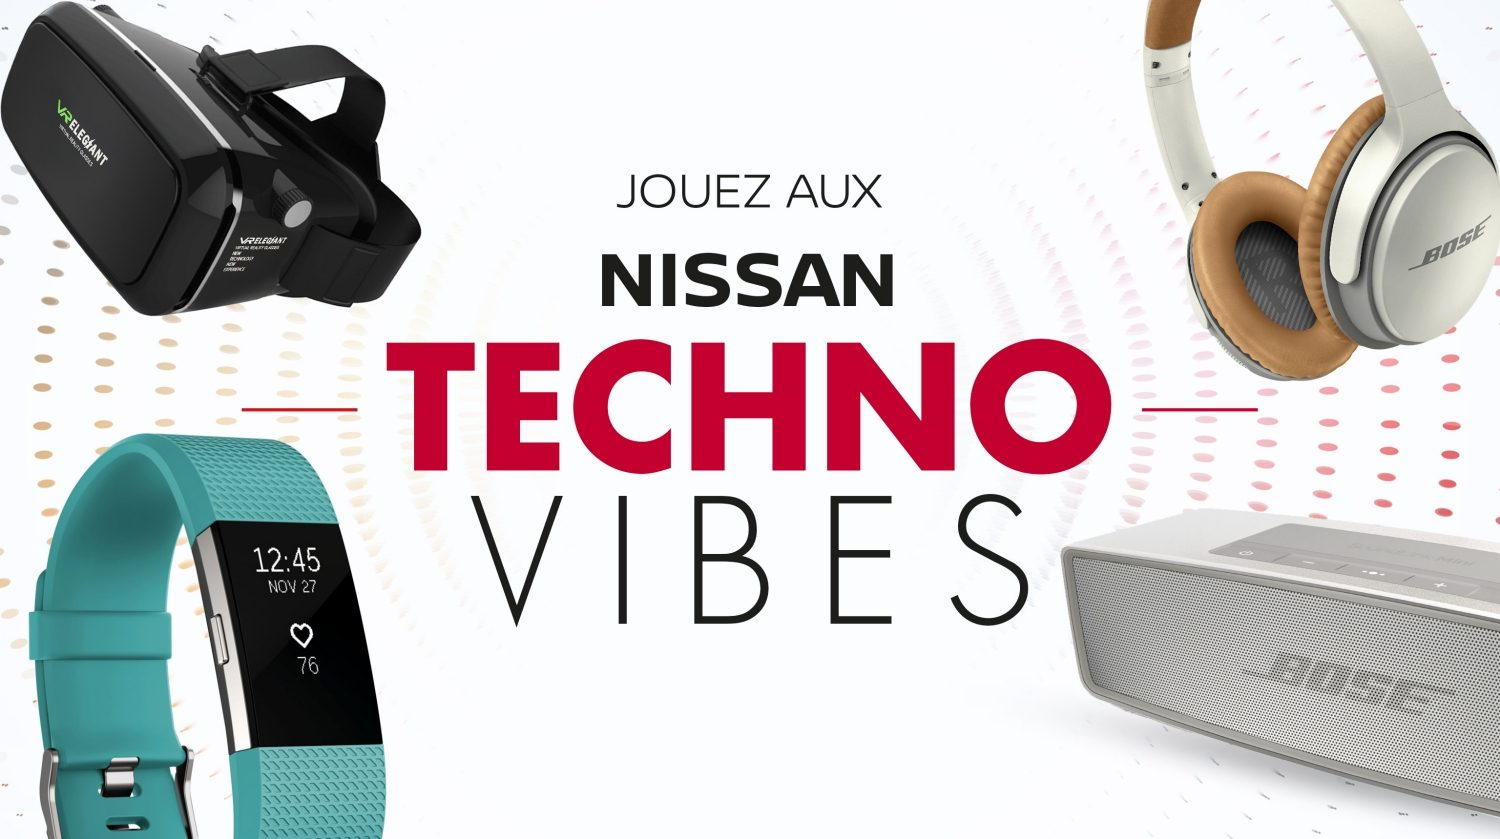 Nissan Techno Vibes